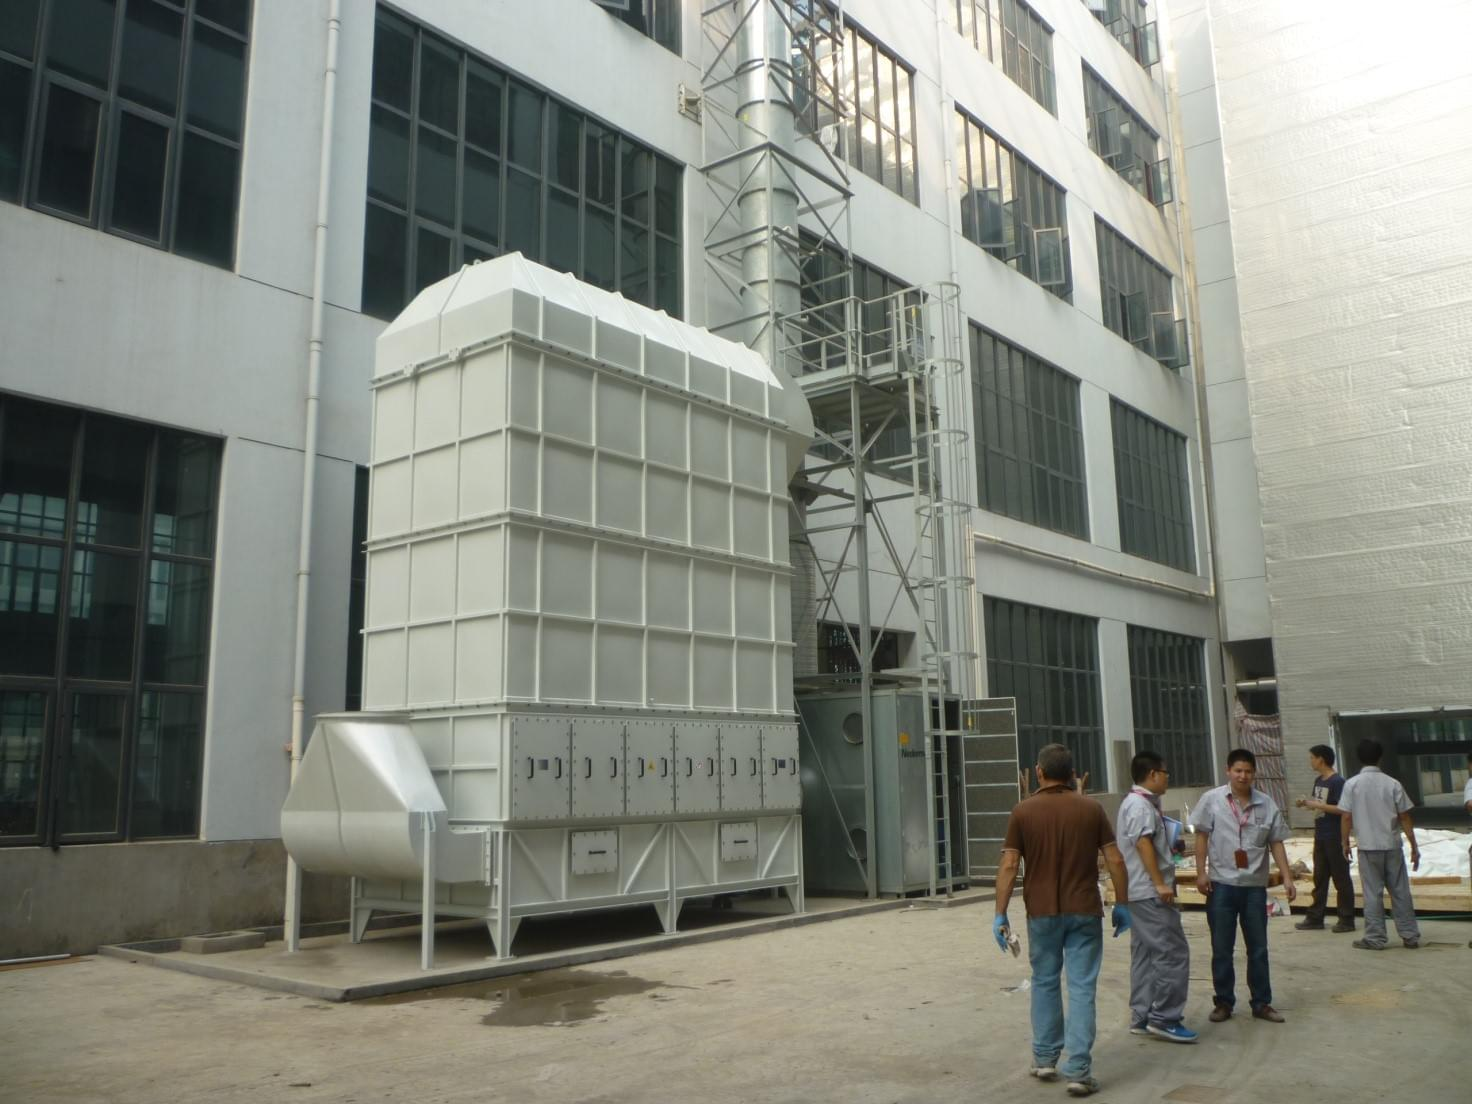 SO.TEC overlooking the East: provided the first air filtration system in China